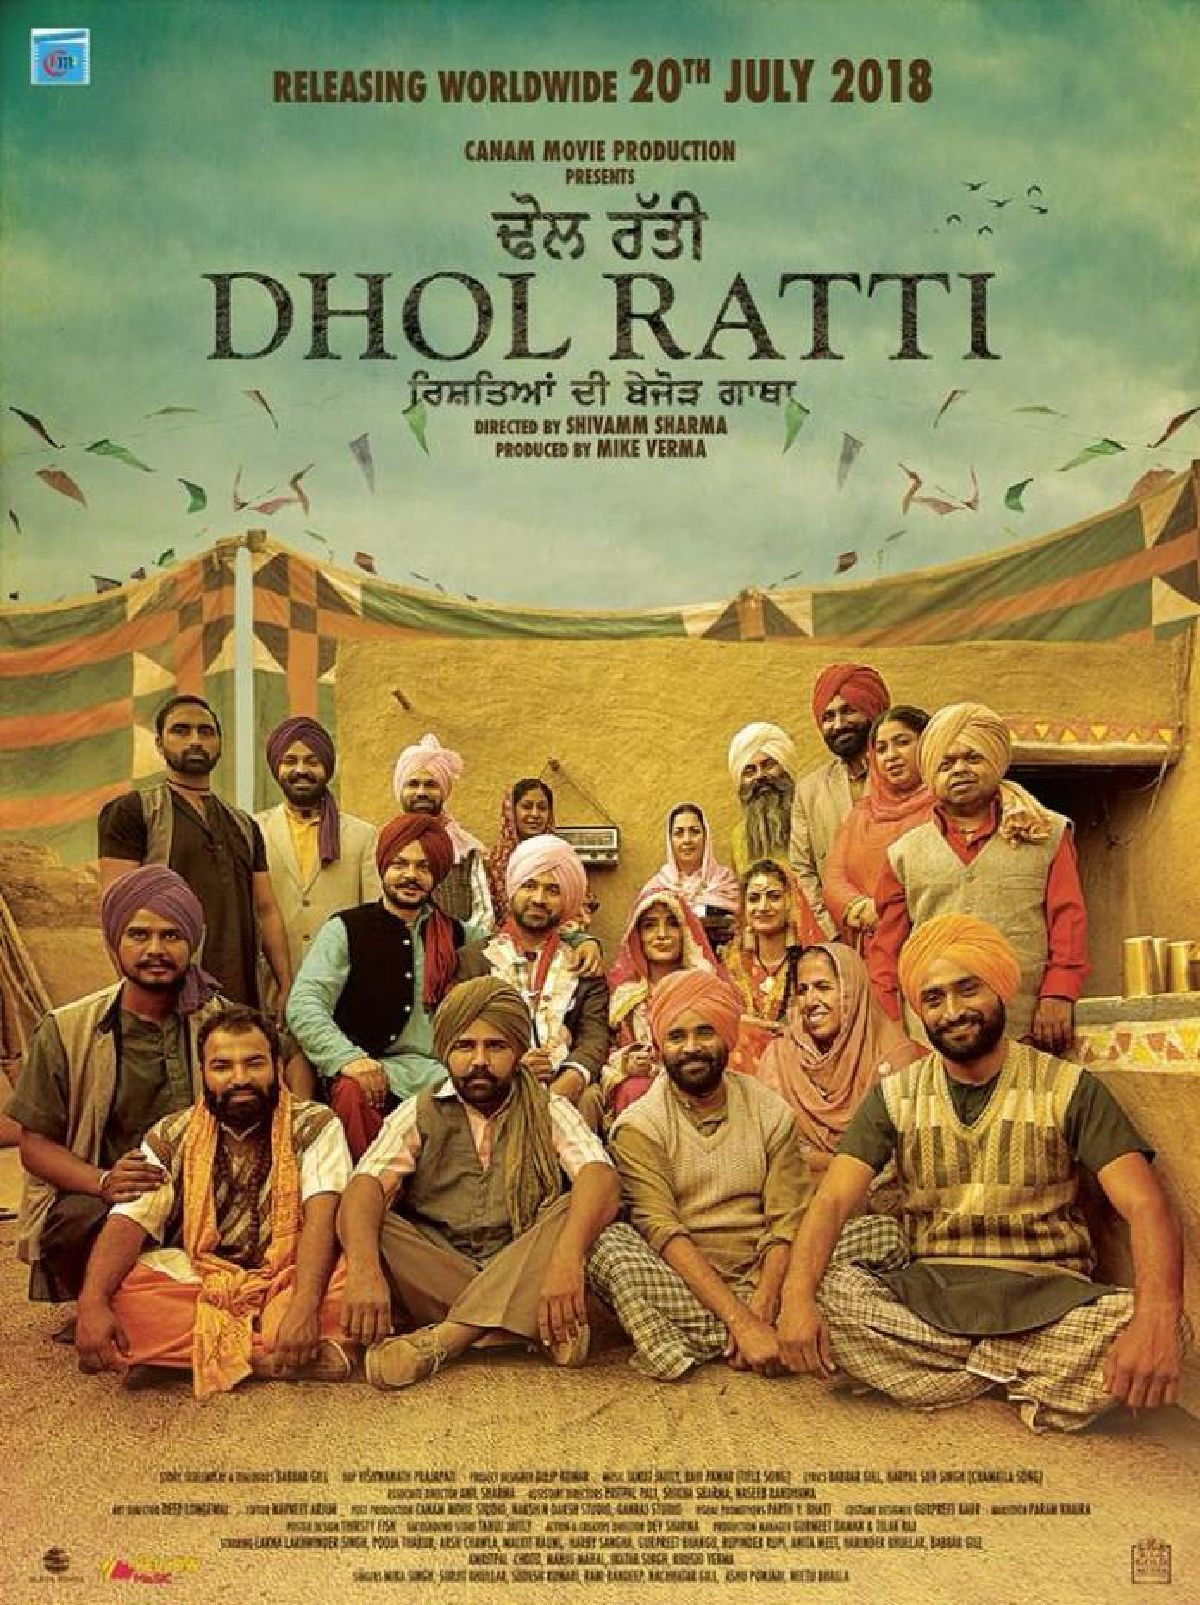 'Dhol Ratti' movie poster